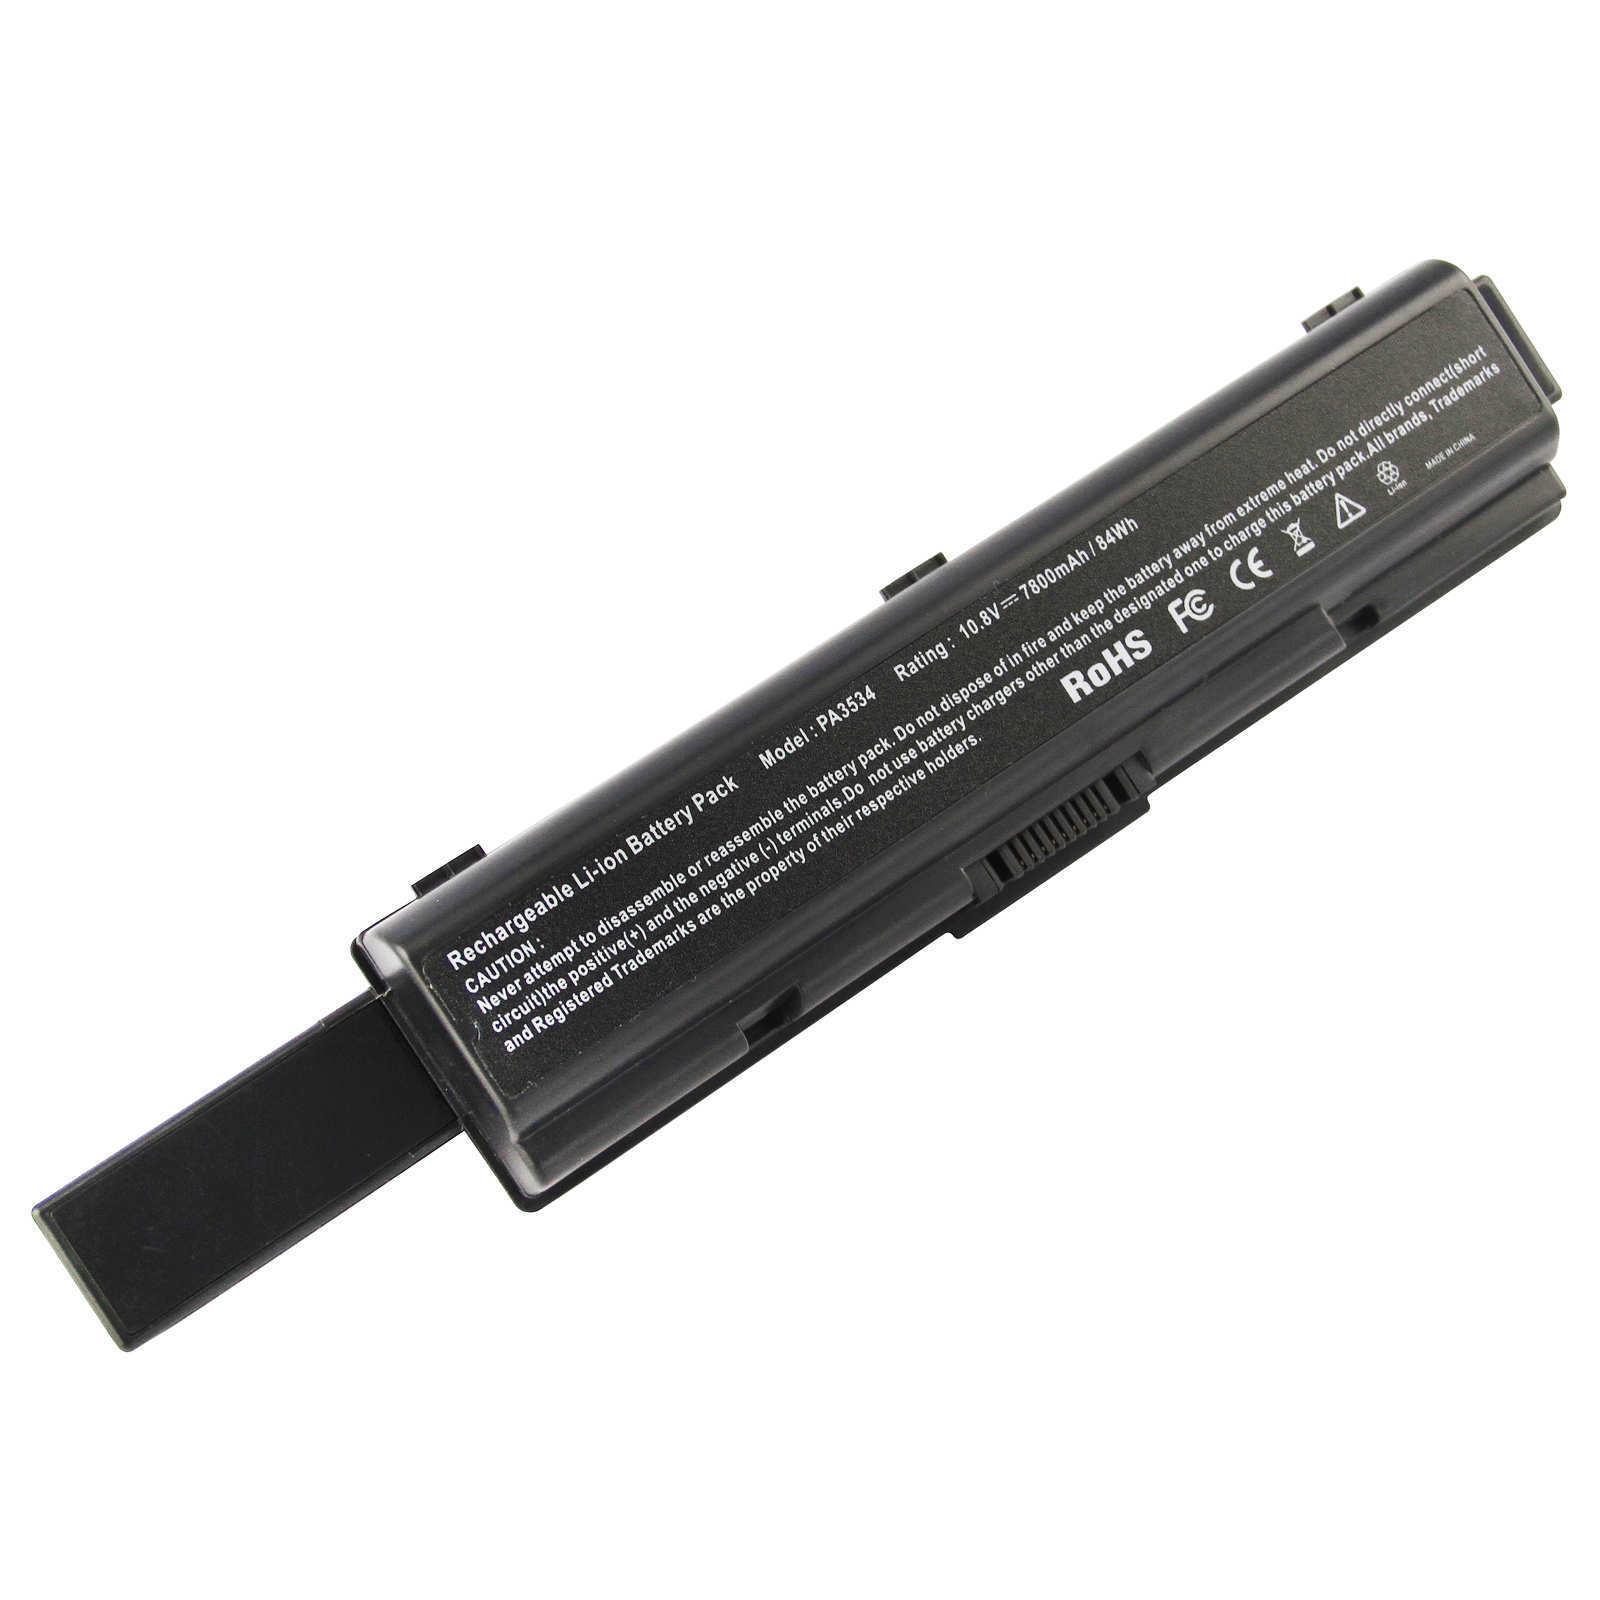 Replacement Toshiba Satellite A200-JA2 Battery